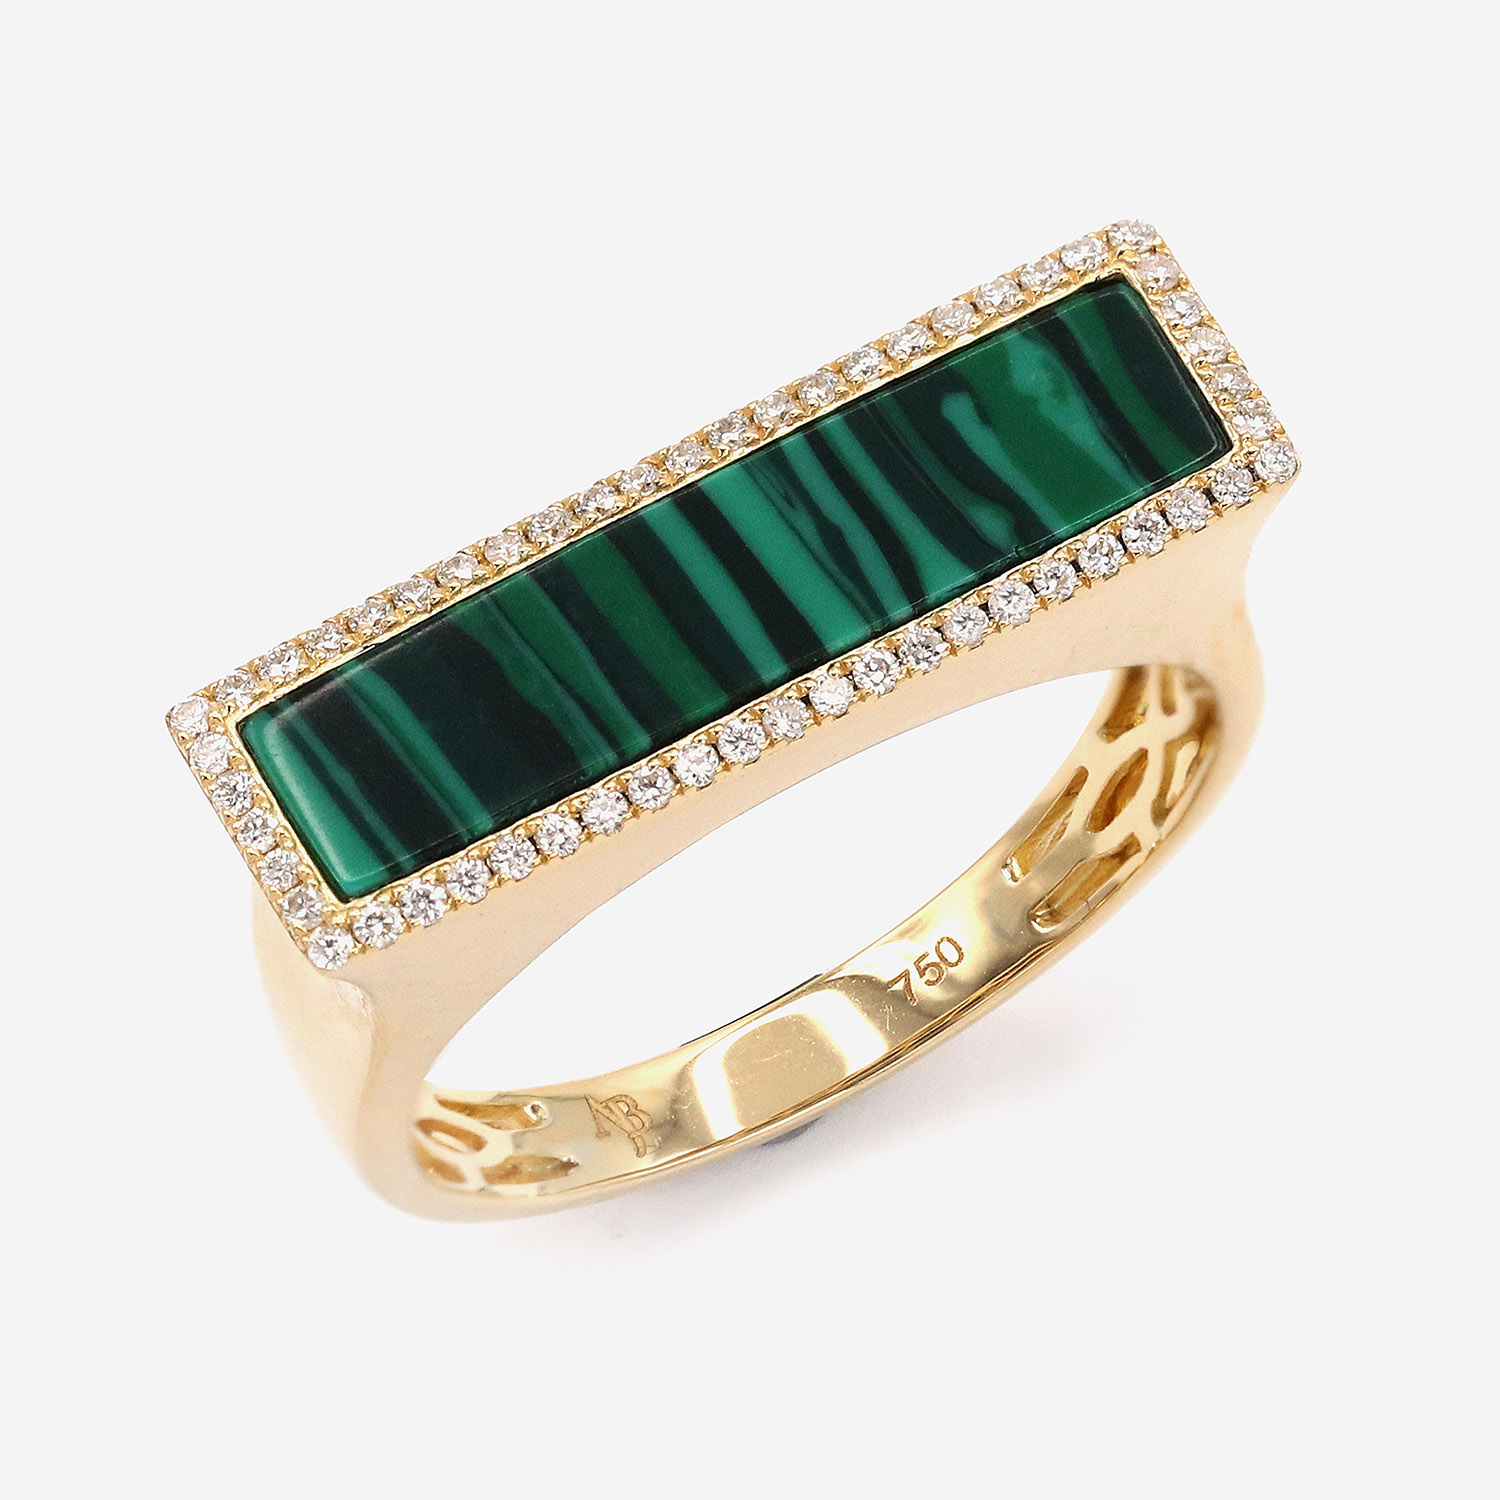 Signet Ring by Amira Karaouli on curated-crowd.com